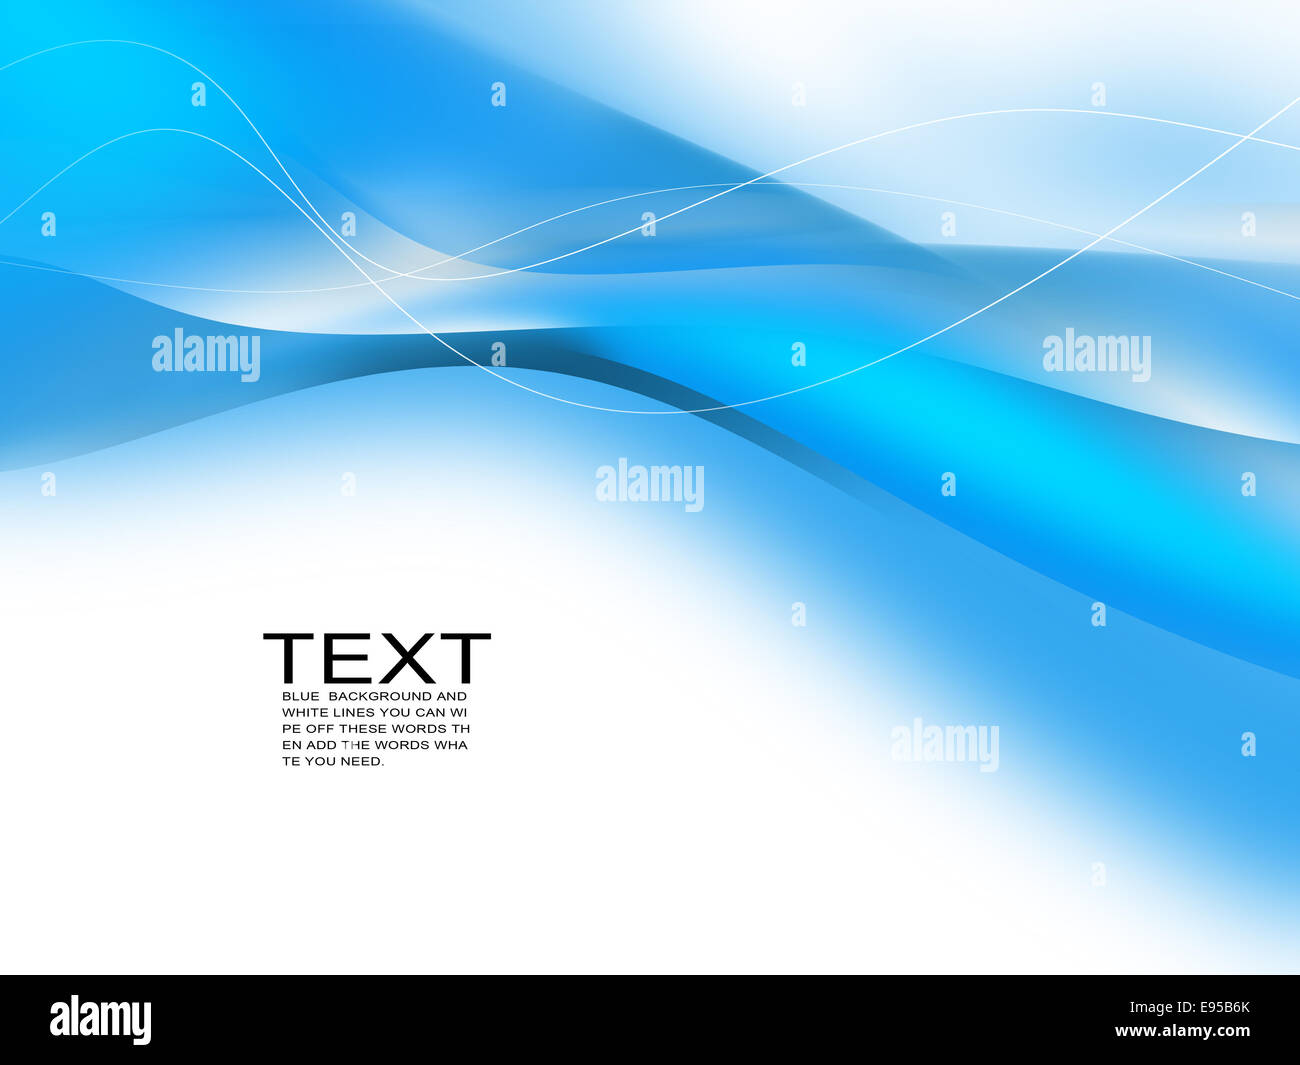 blue abstract background,digitally generated image. - Stock Image